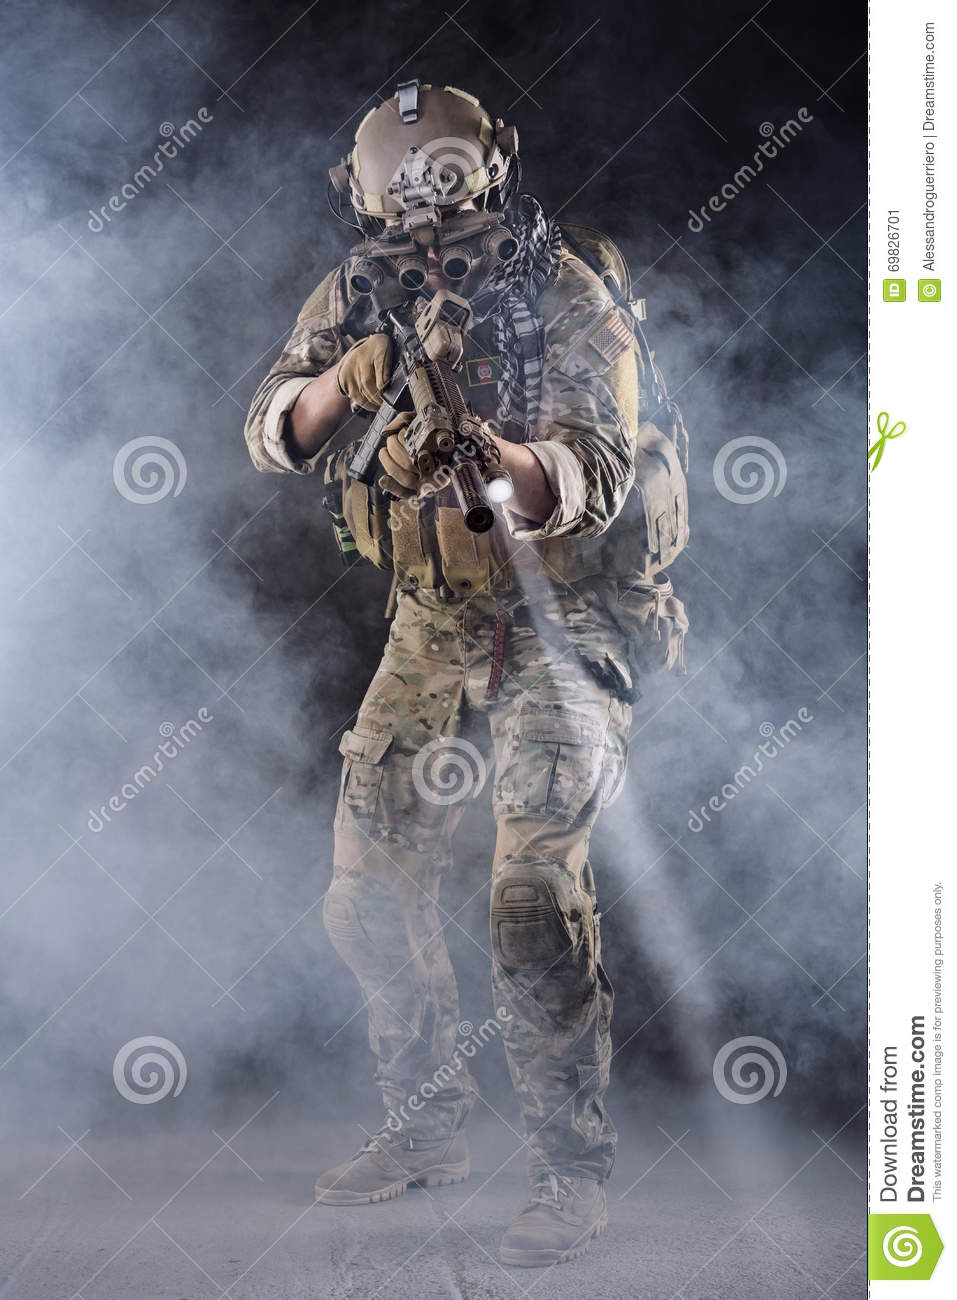 US Army Soldier in Action in the Fog